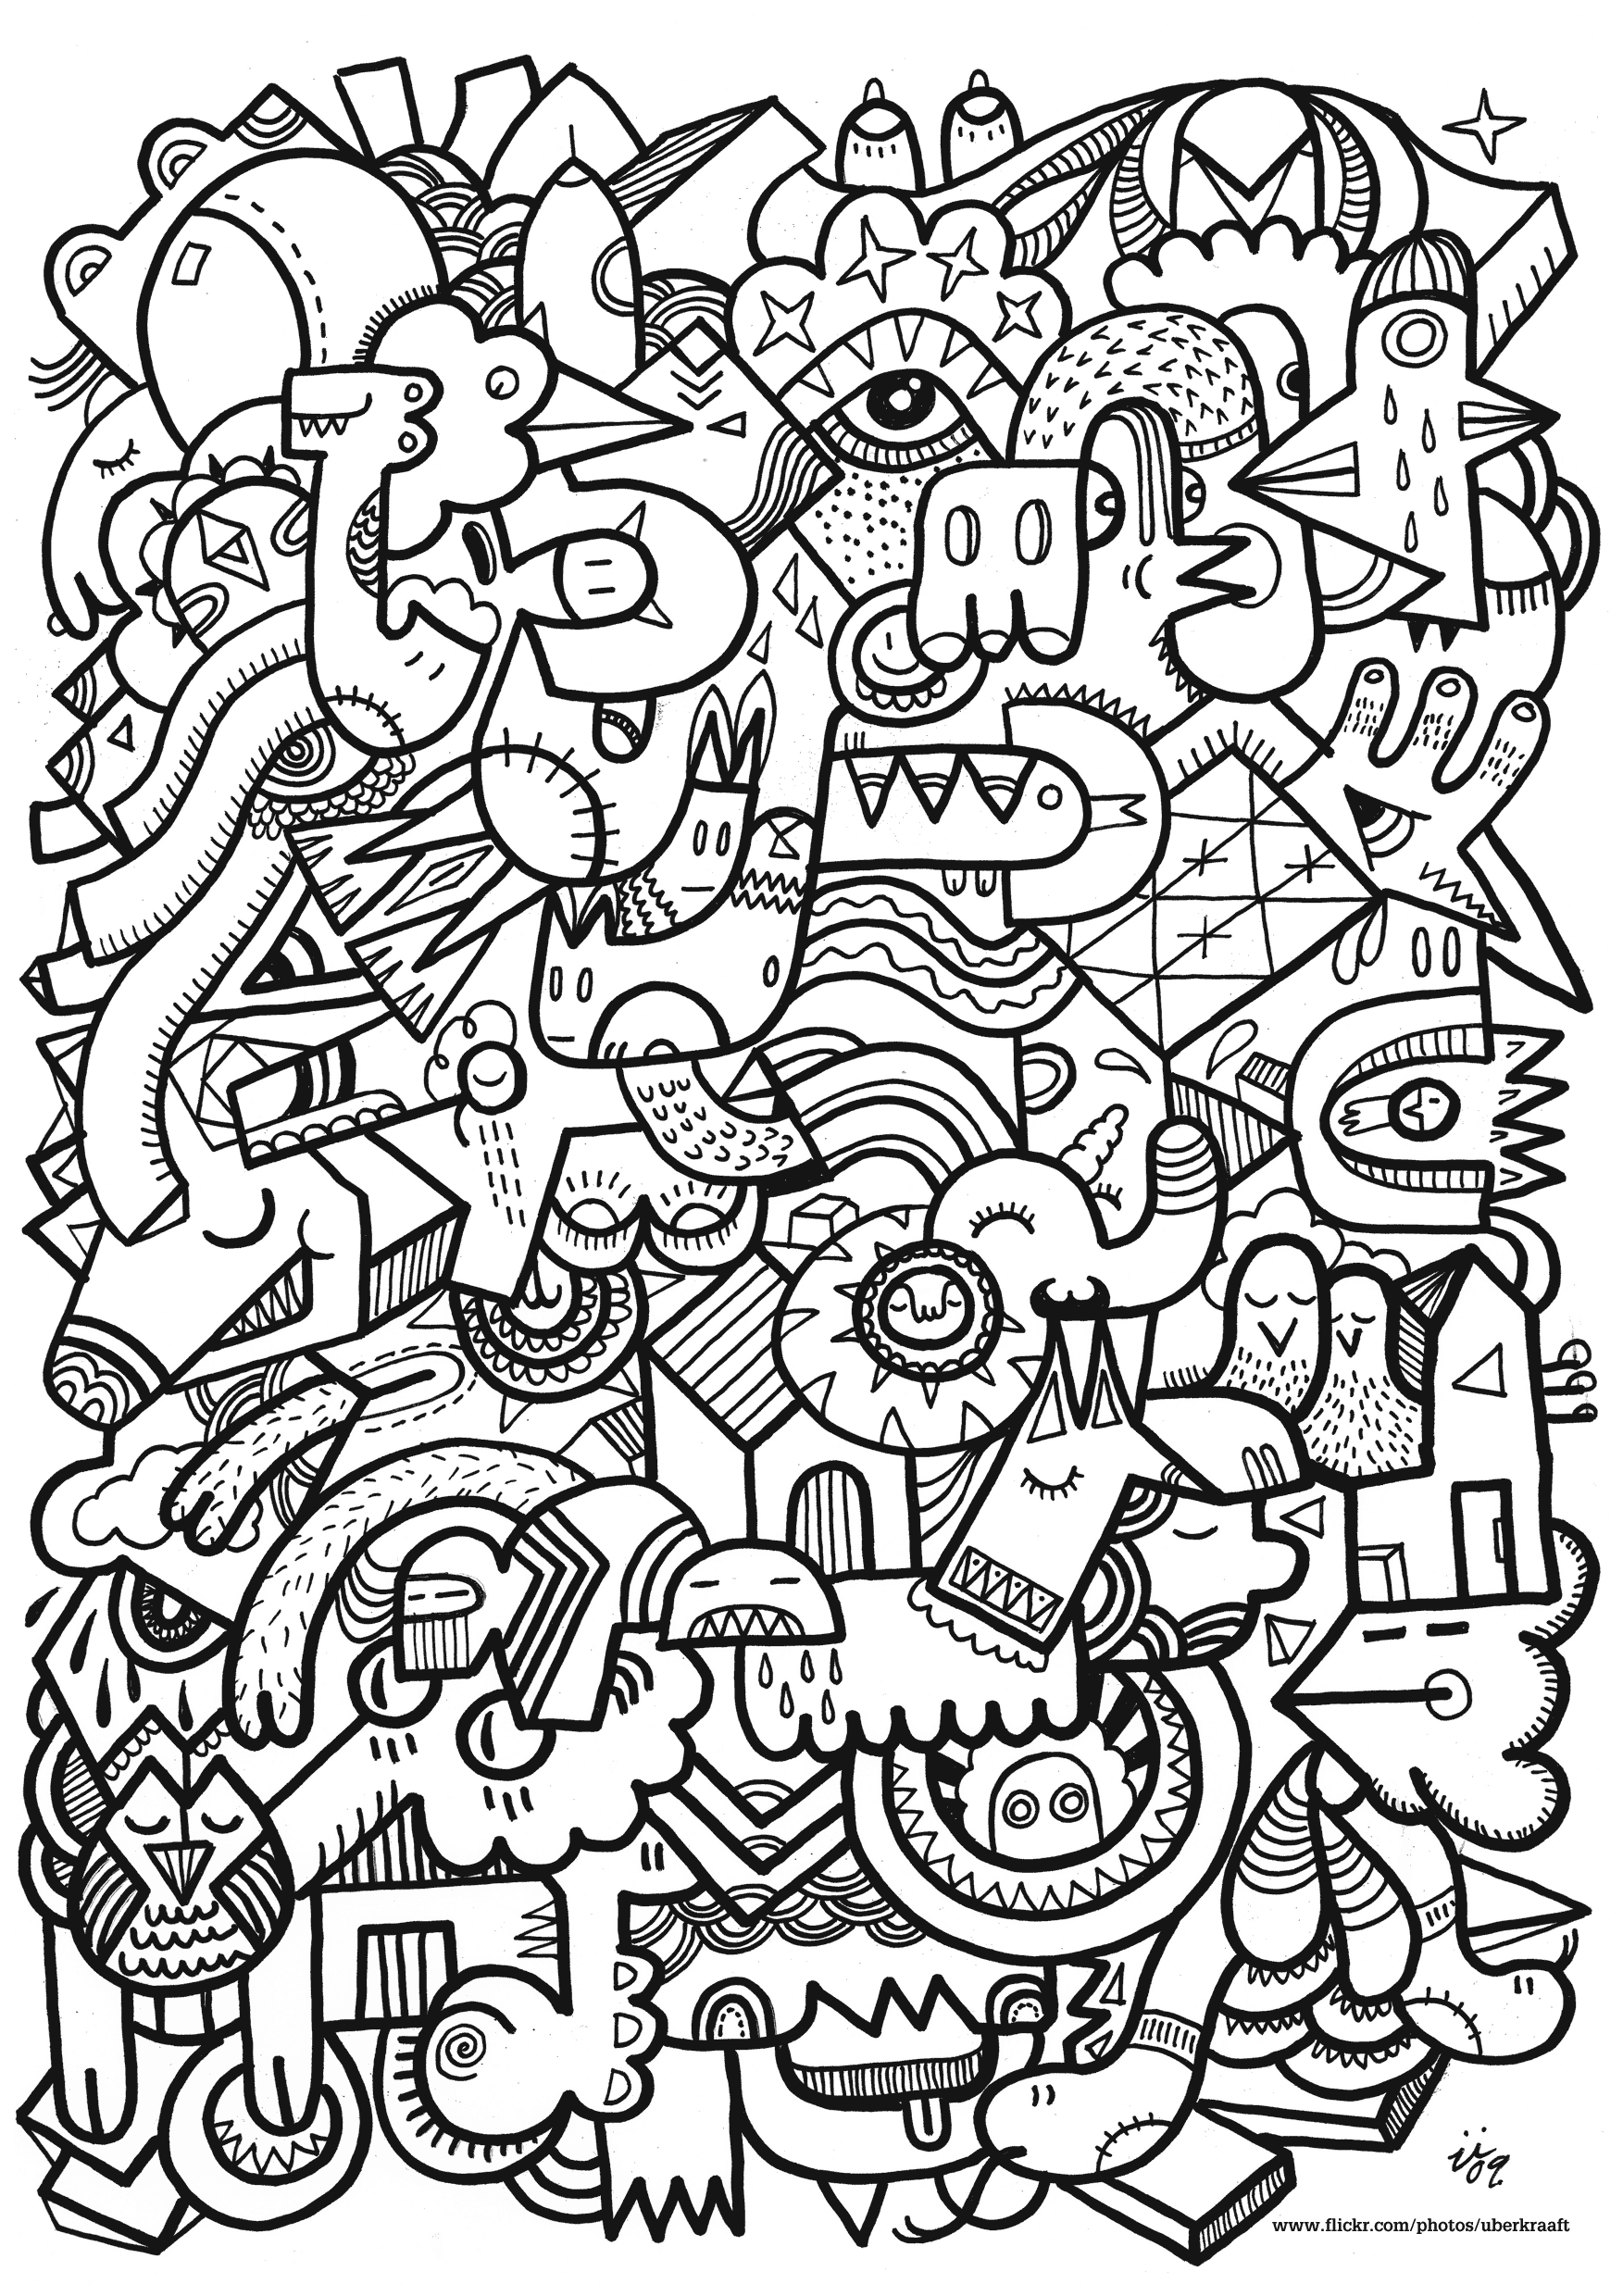 Colouring sheets hard - Patterns Difficult Colouring Pages